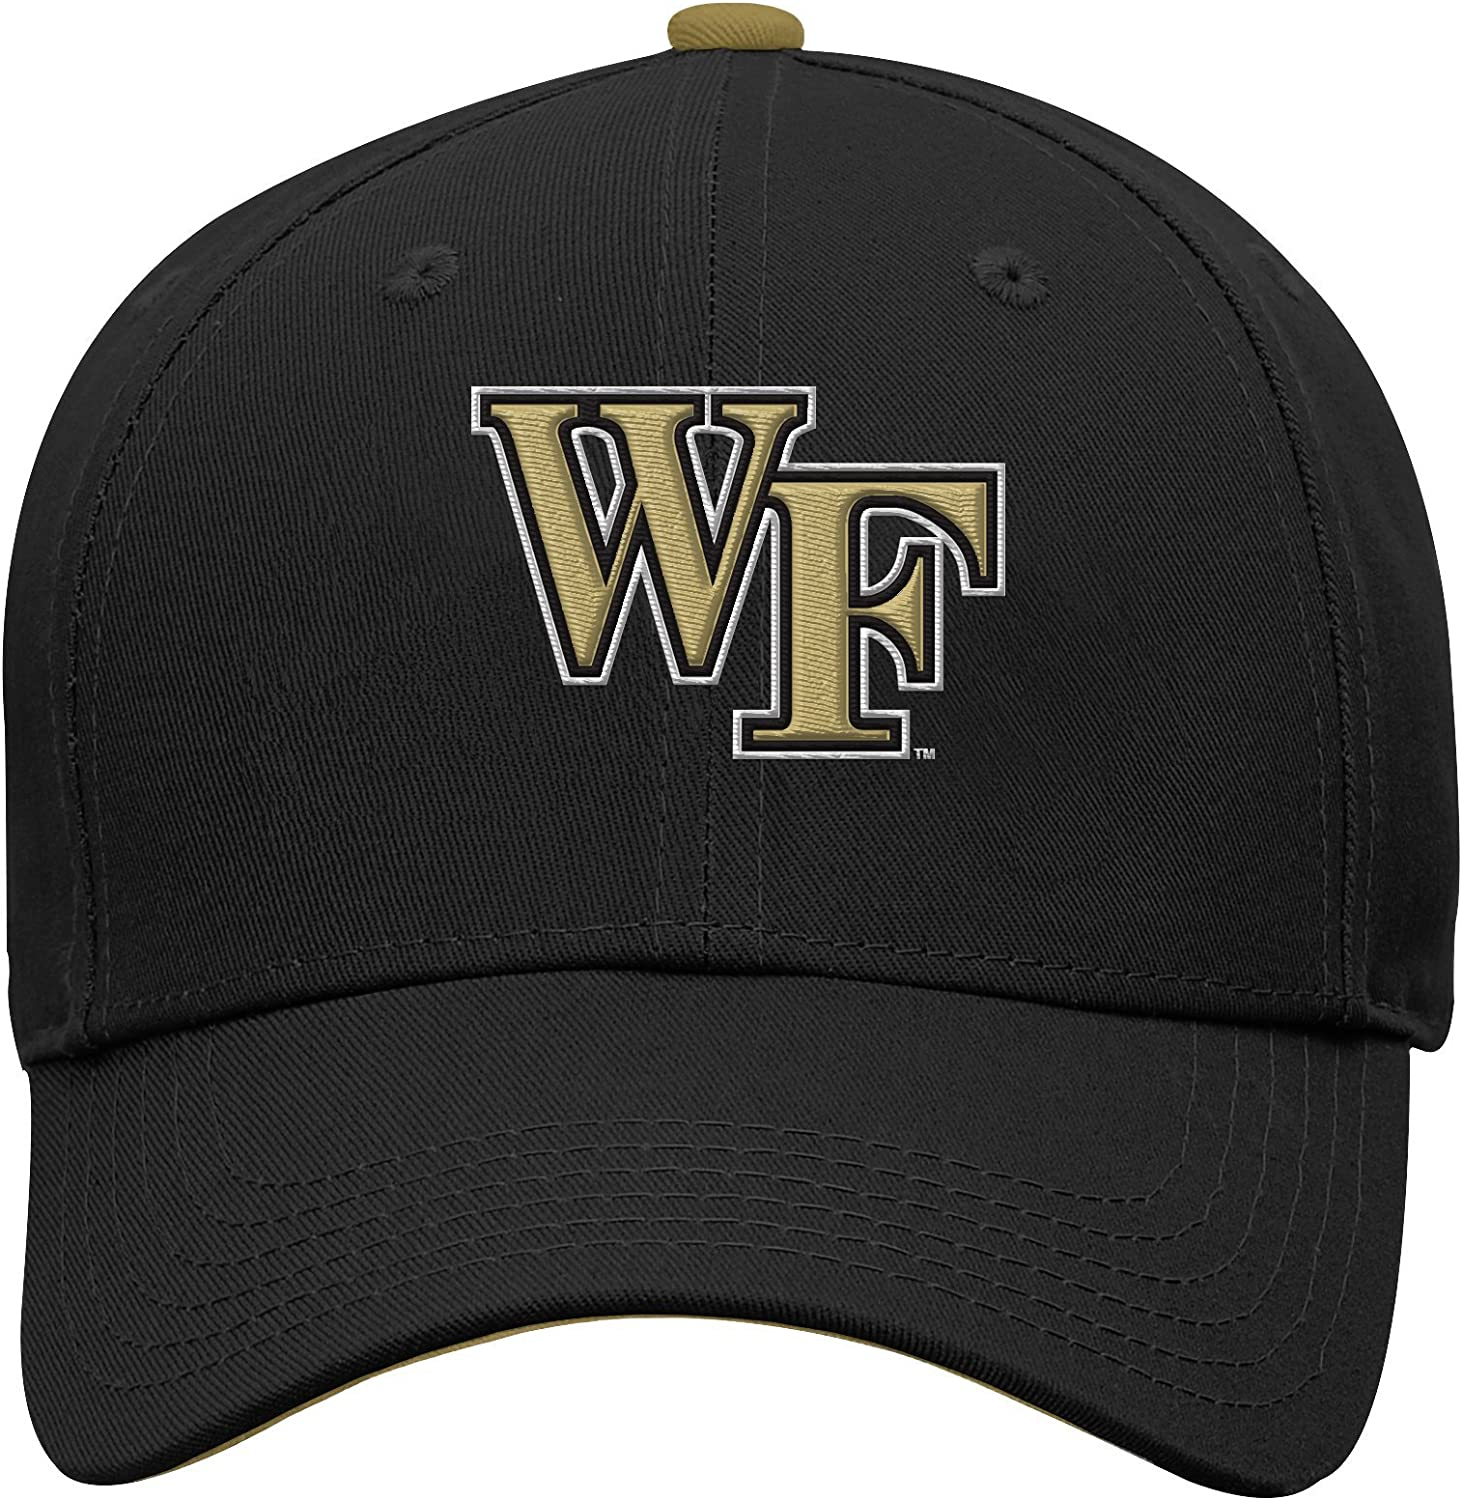 NCAA Wake Forest Demon Deacons Youth Boys Basic Structured Adjustable Hat, Youth Boys One Size, Black